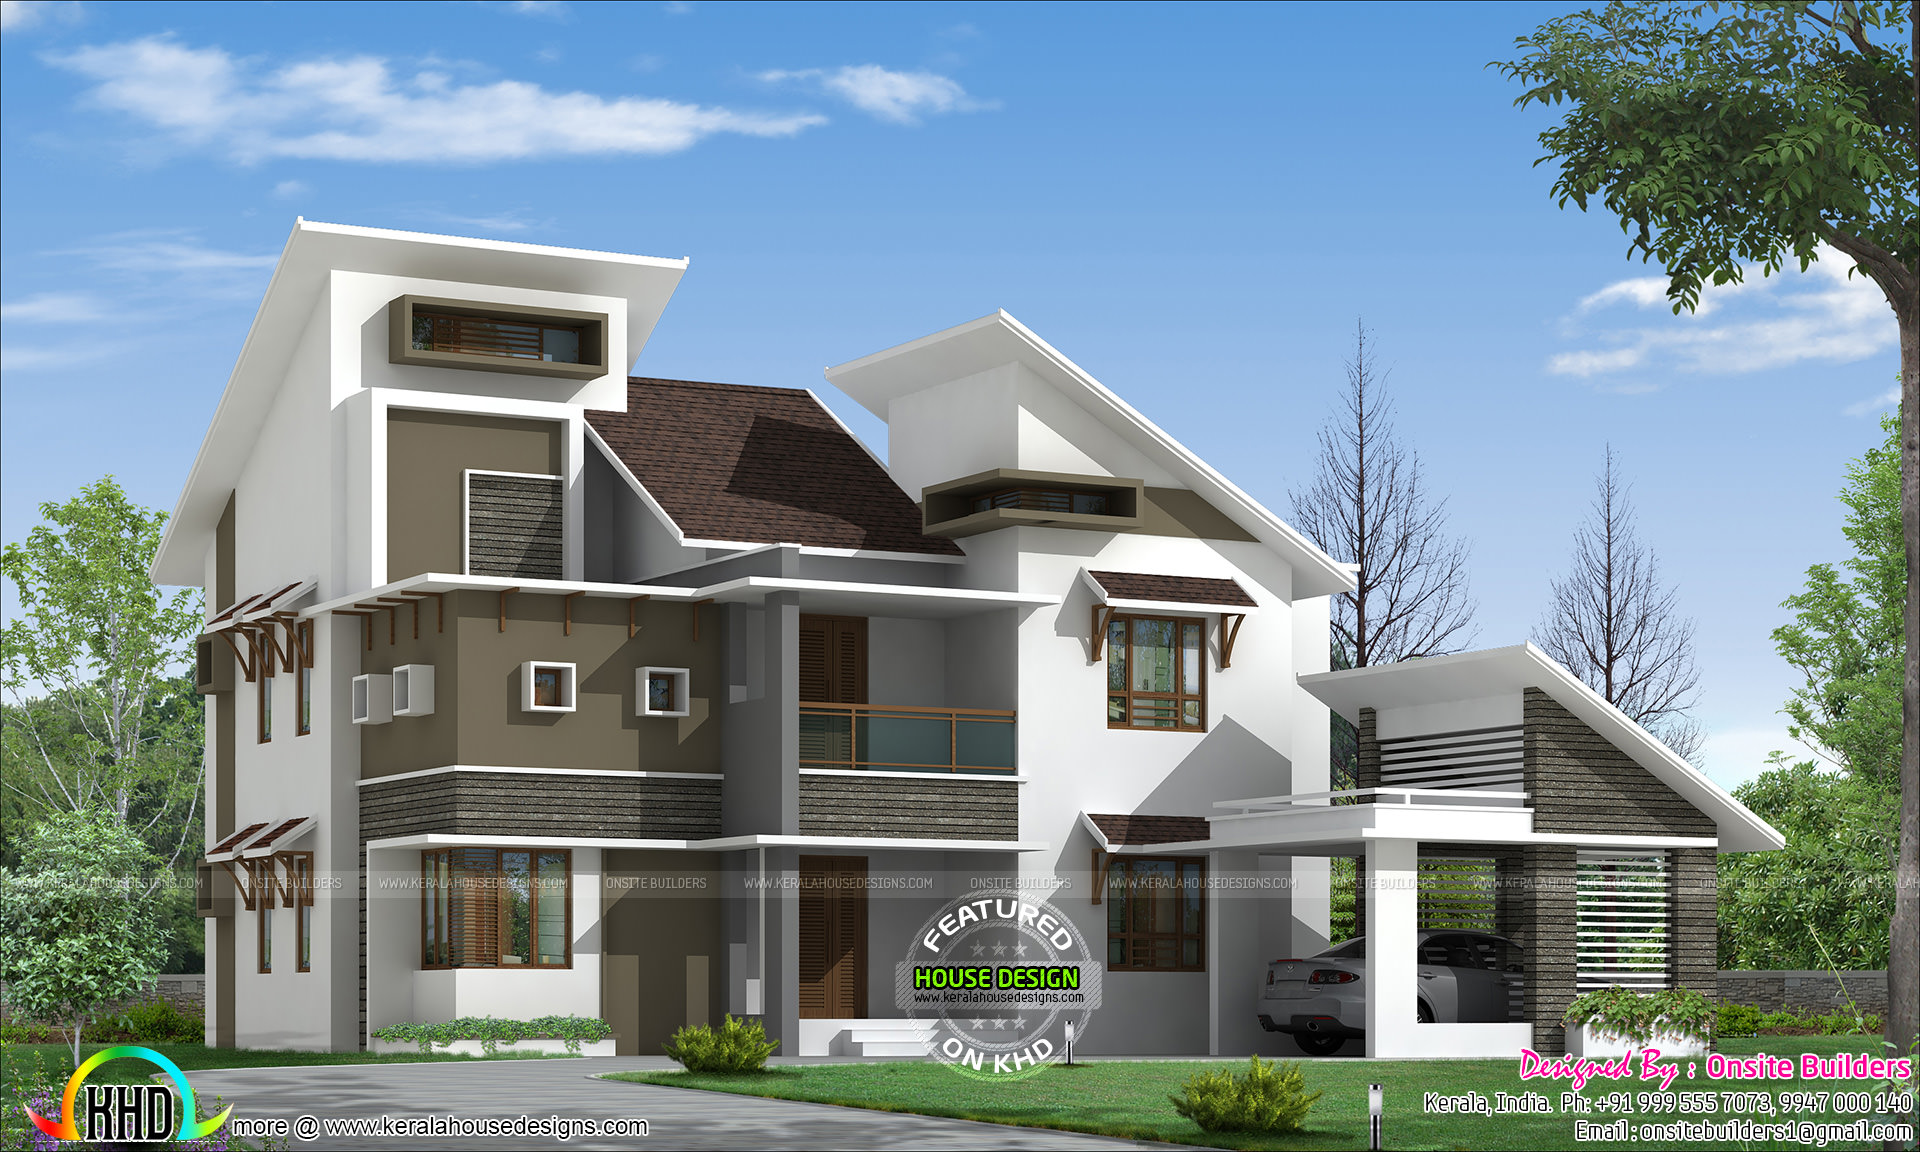 Slanting roof style modern home - Kerala home design and ...